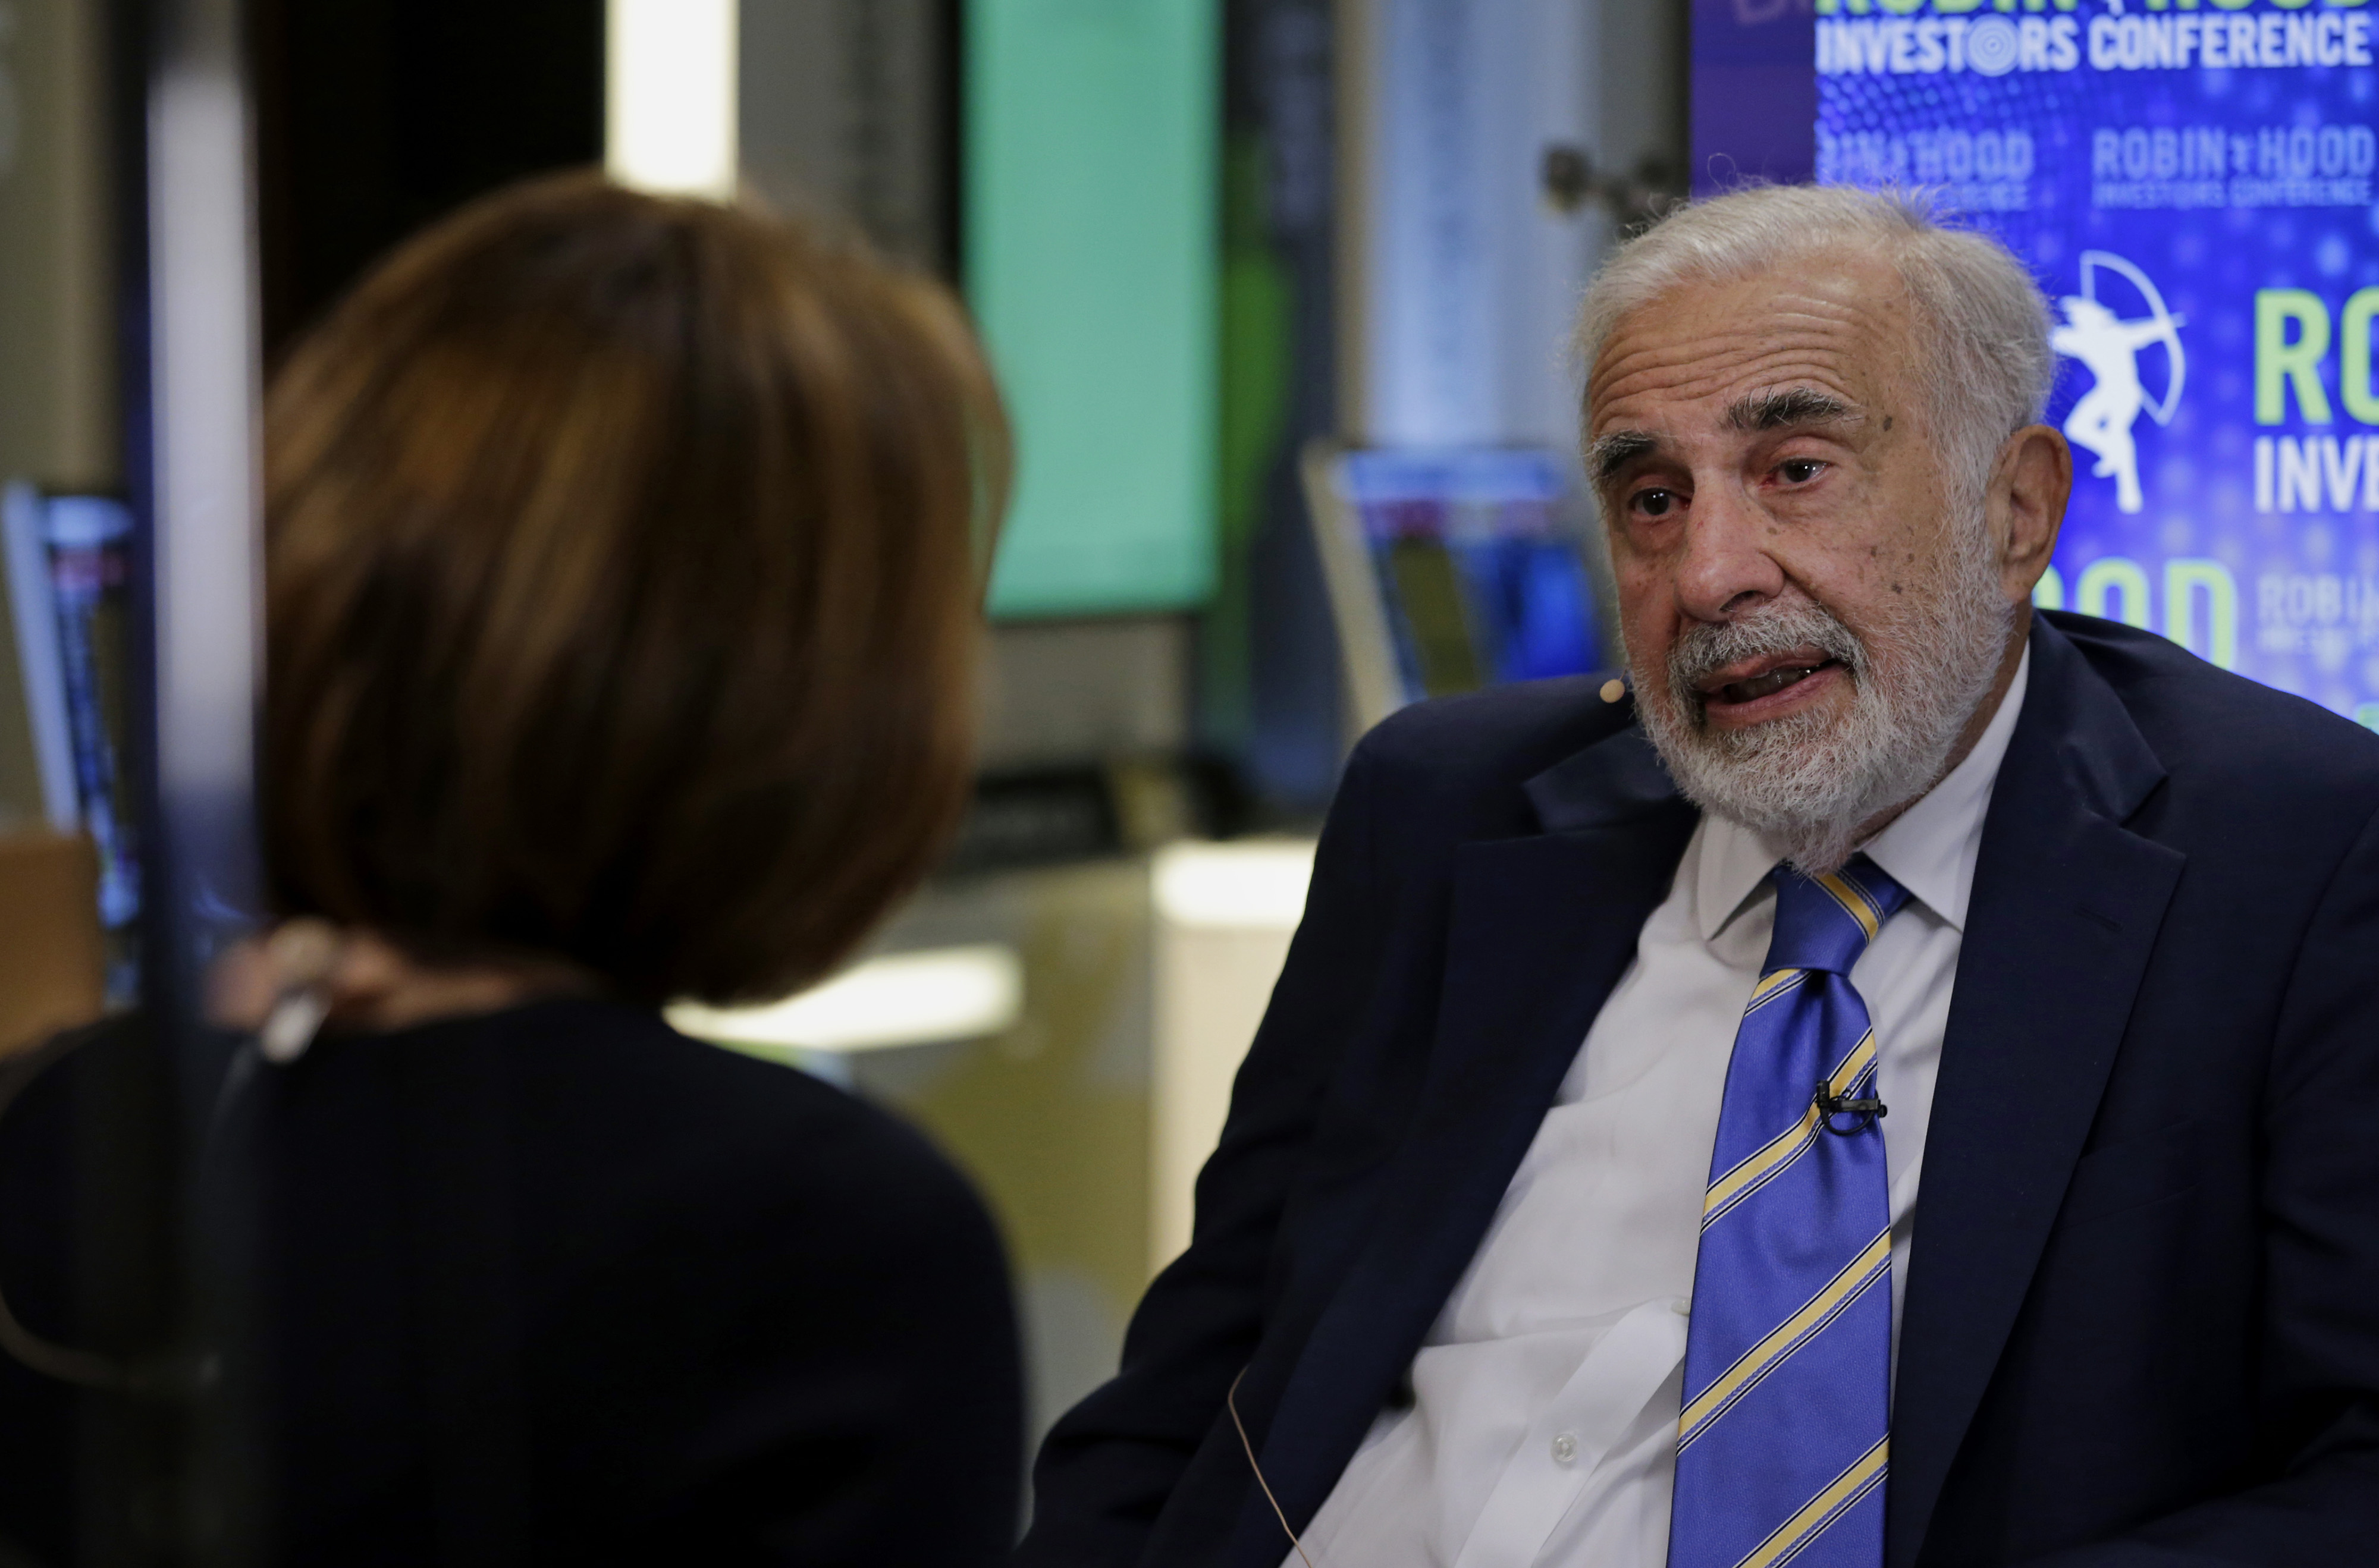 Billionaire activist investor Carl Icahn speaks during a Bloomberg Television interview at the Robin Hood Investors Conference in New York, U.S., on Tuesday, Oct. 21, 2014.